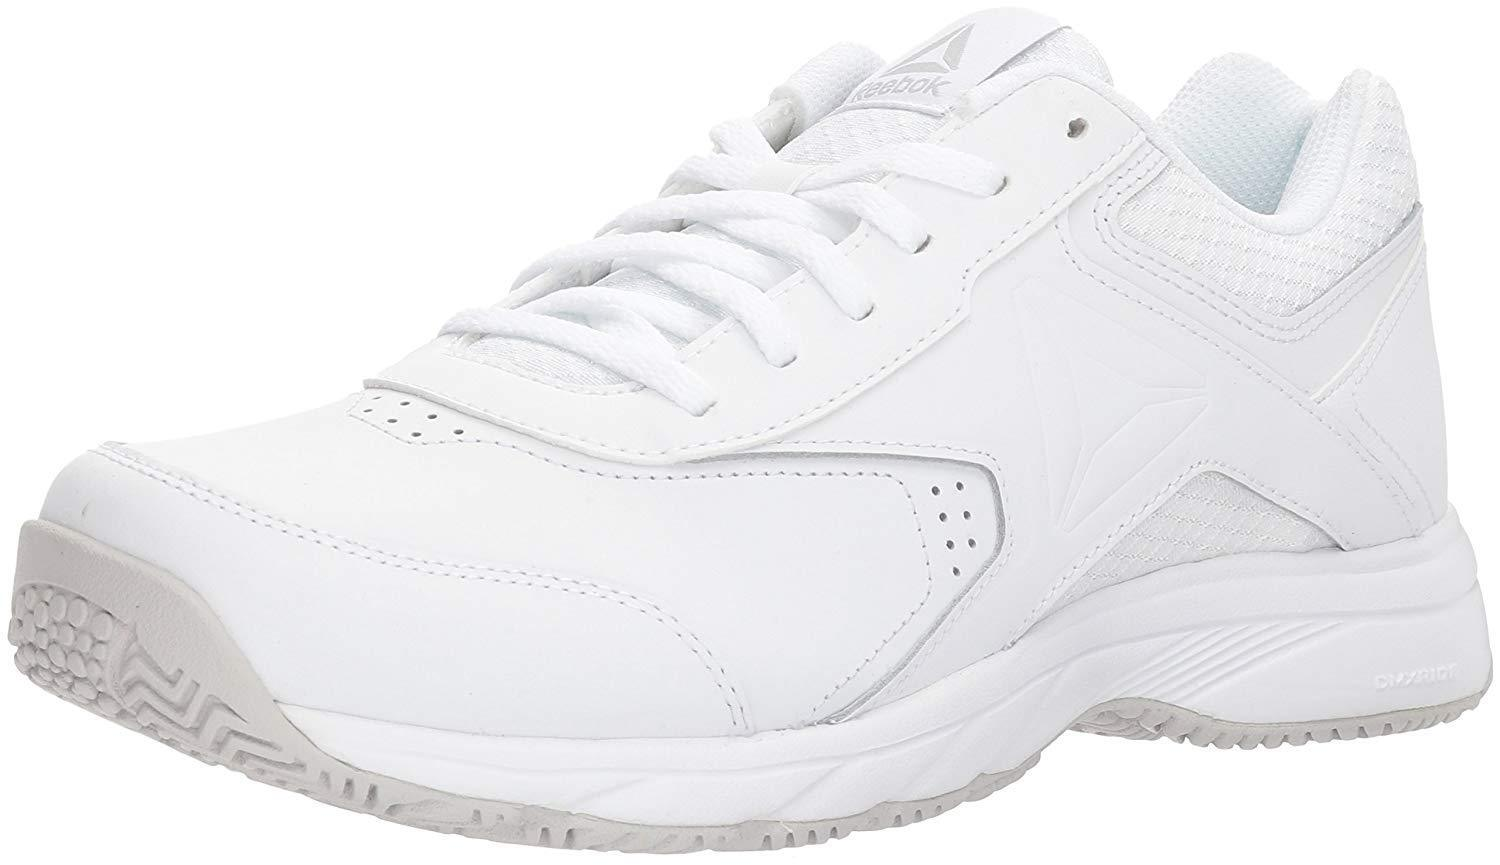 REEBOK CN0823 WORK N CUSHION 3.0 WIDE Weiß STEEL CN0823 REEBOK Damenschuhe US SIZES a7fecc